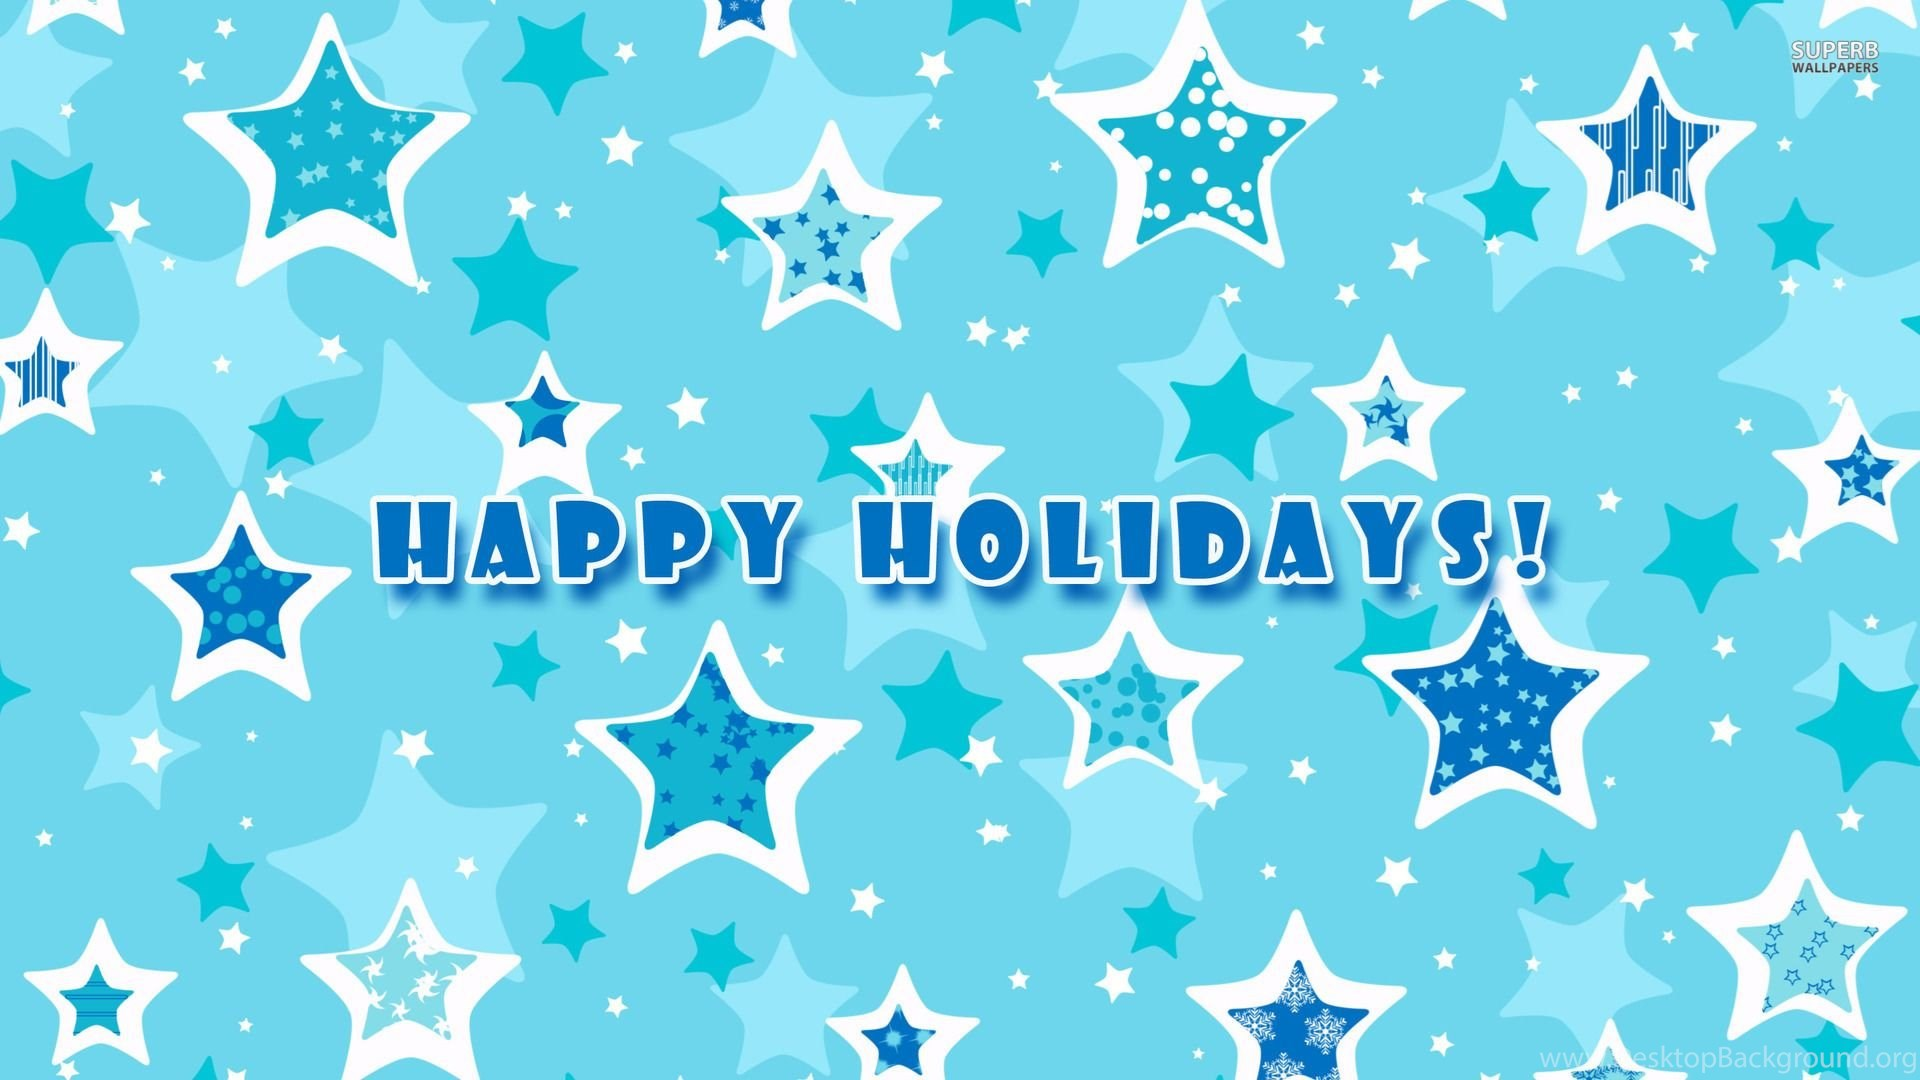 Happy Holidays Wallpapers Holiday Wallpapers Desktop Background